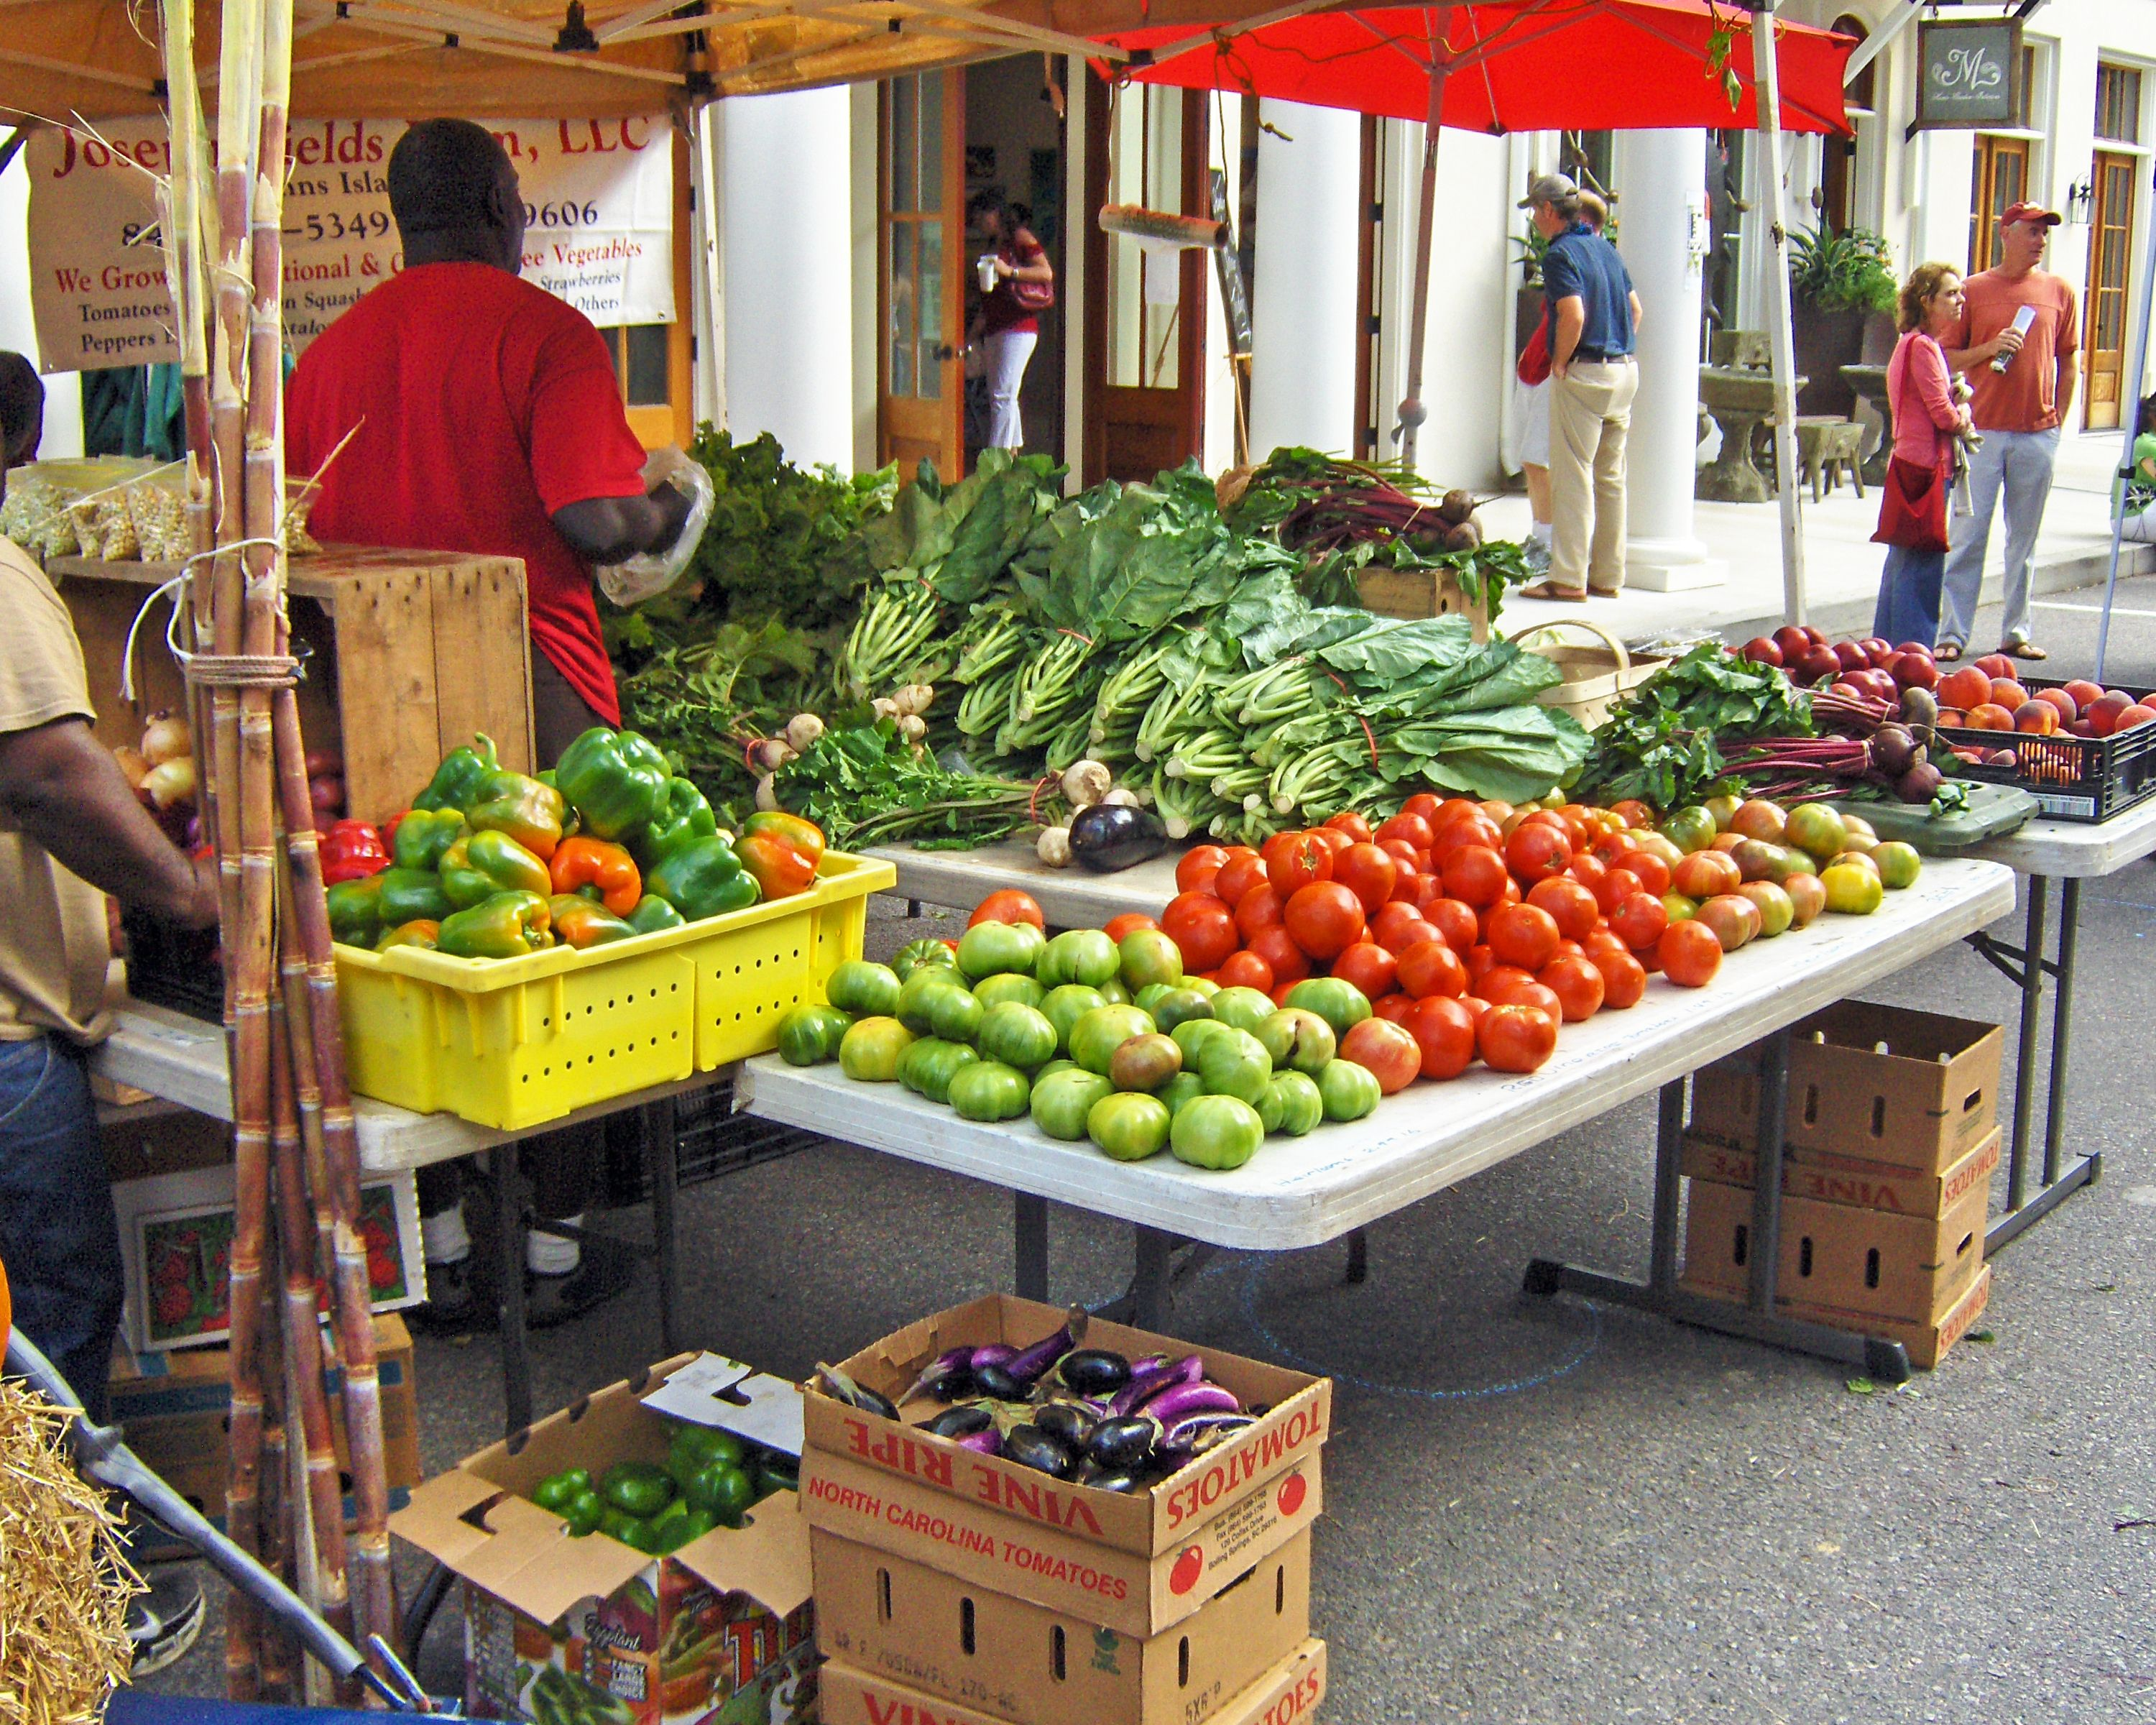 The annual Habersham Harvest Festival and Farmers Market bring the best local farmers and their produce to the Marketplace!